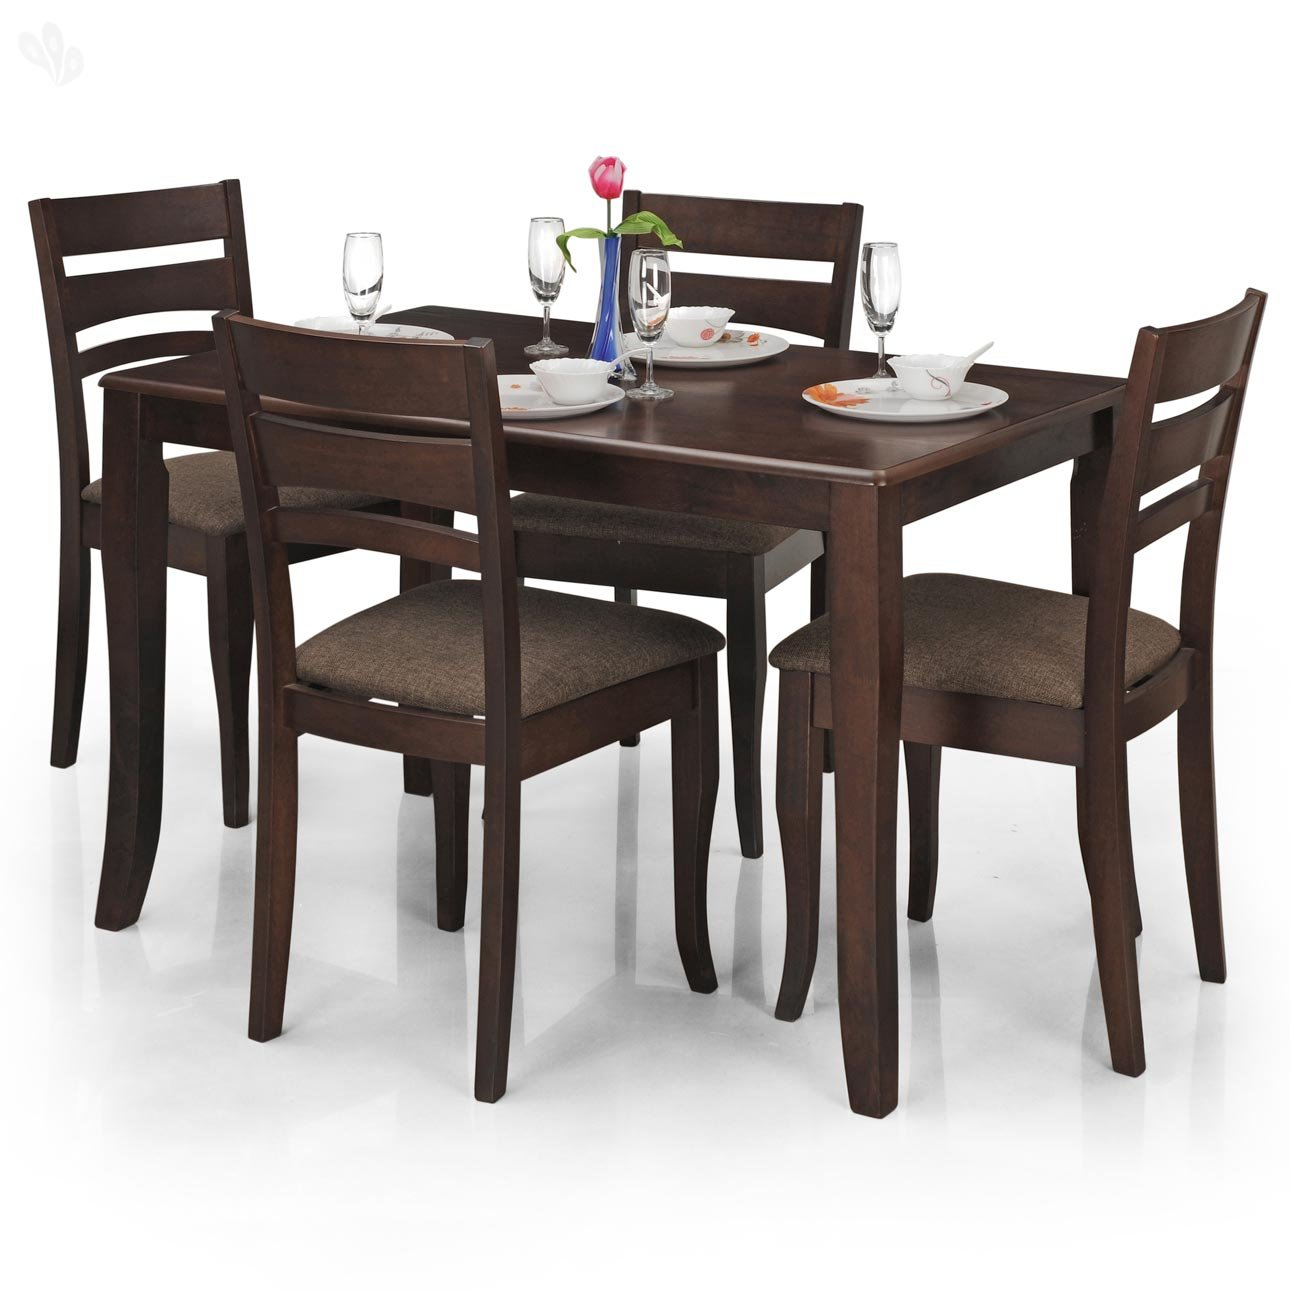 royal oak victor four seater dining table set (walnut) amazonin  - royal oak victor four seater dining table set (walnut) amazonin home kitchen